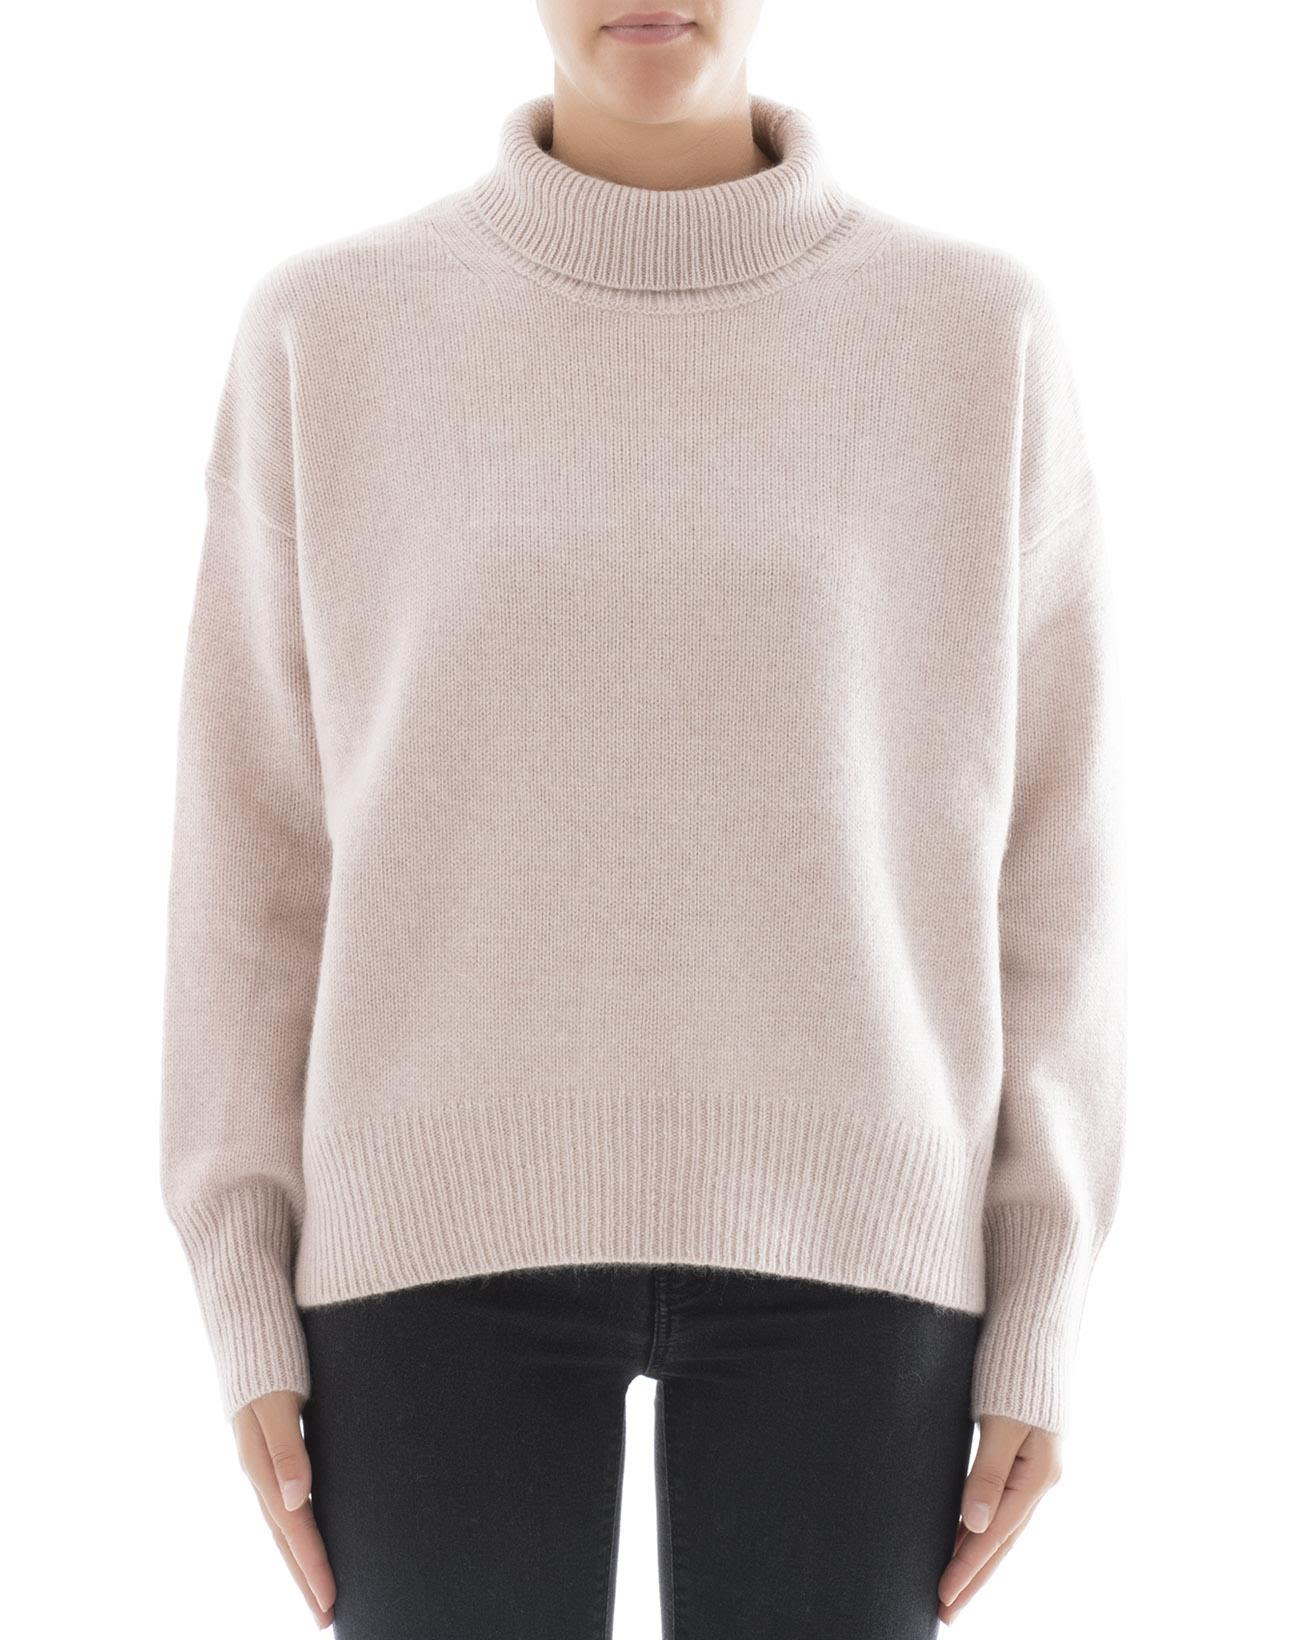 360 sweater female pink cachemire turtleneck